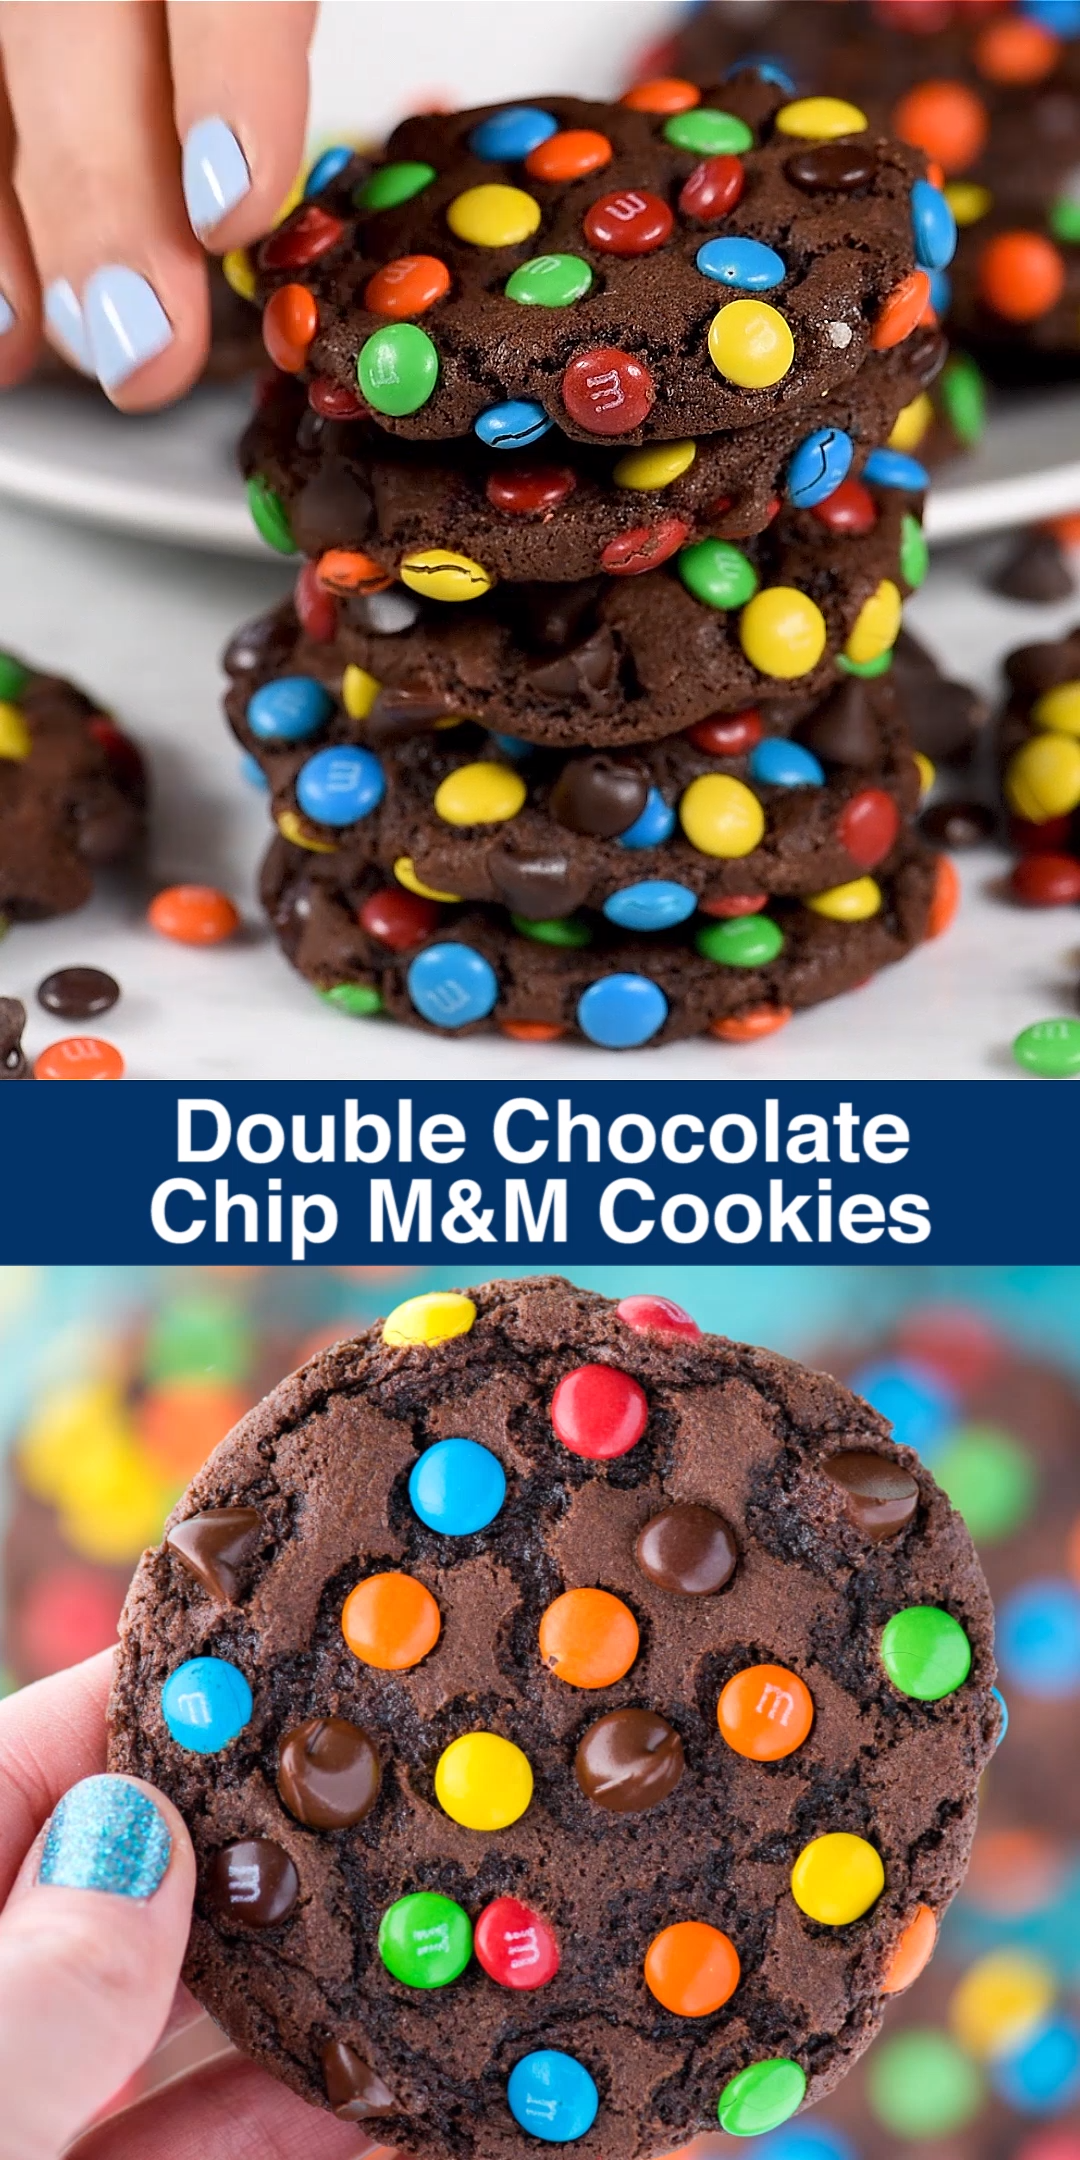 Photo of Double Chocolate Chip M&M Cookies